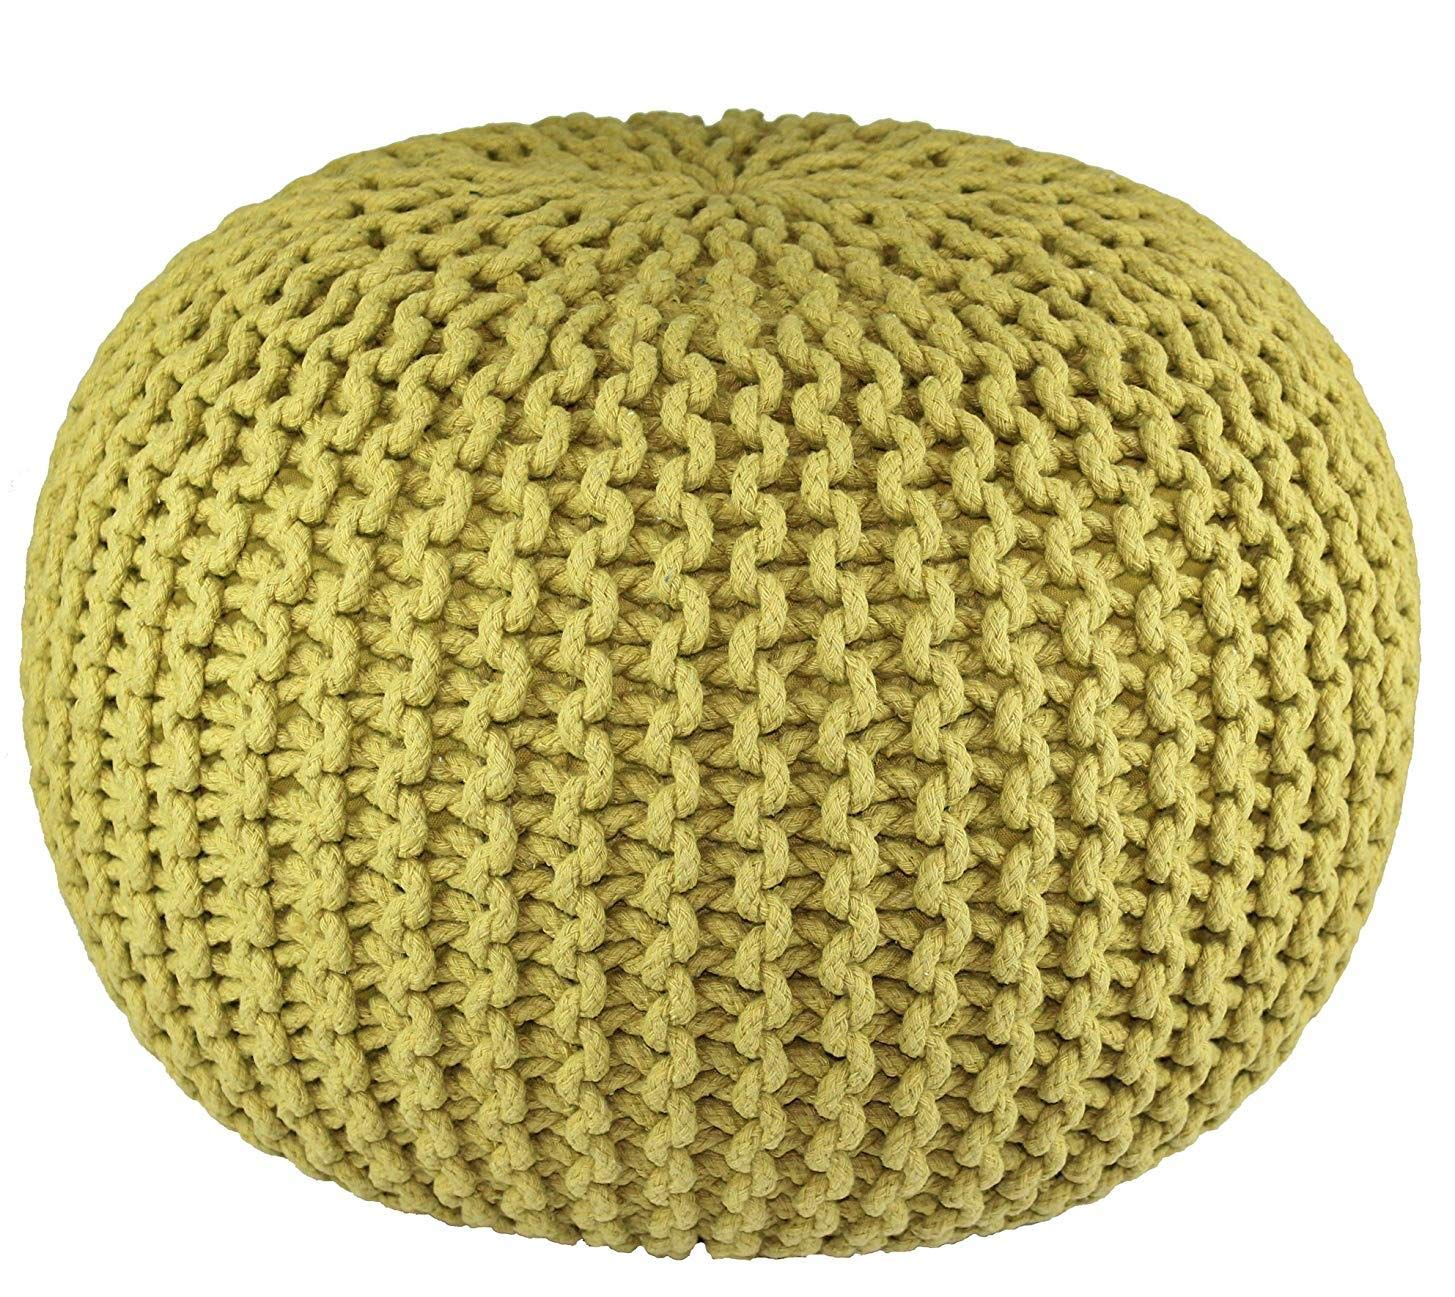 Cotton Craft - Hand Knitted Cable Style Dori Pouf - Green - Floor Ottoman - 100% Cotton Braid Cord - Handmade & Hand Stitched - Truly one of a Kind Seating - 20 Dia x 14 High